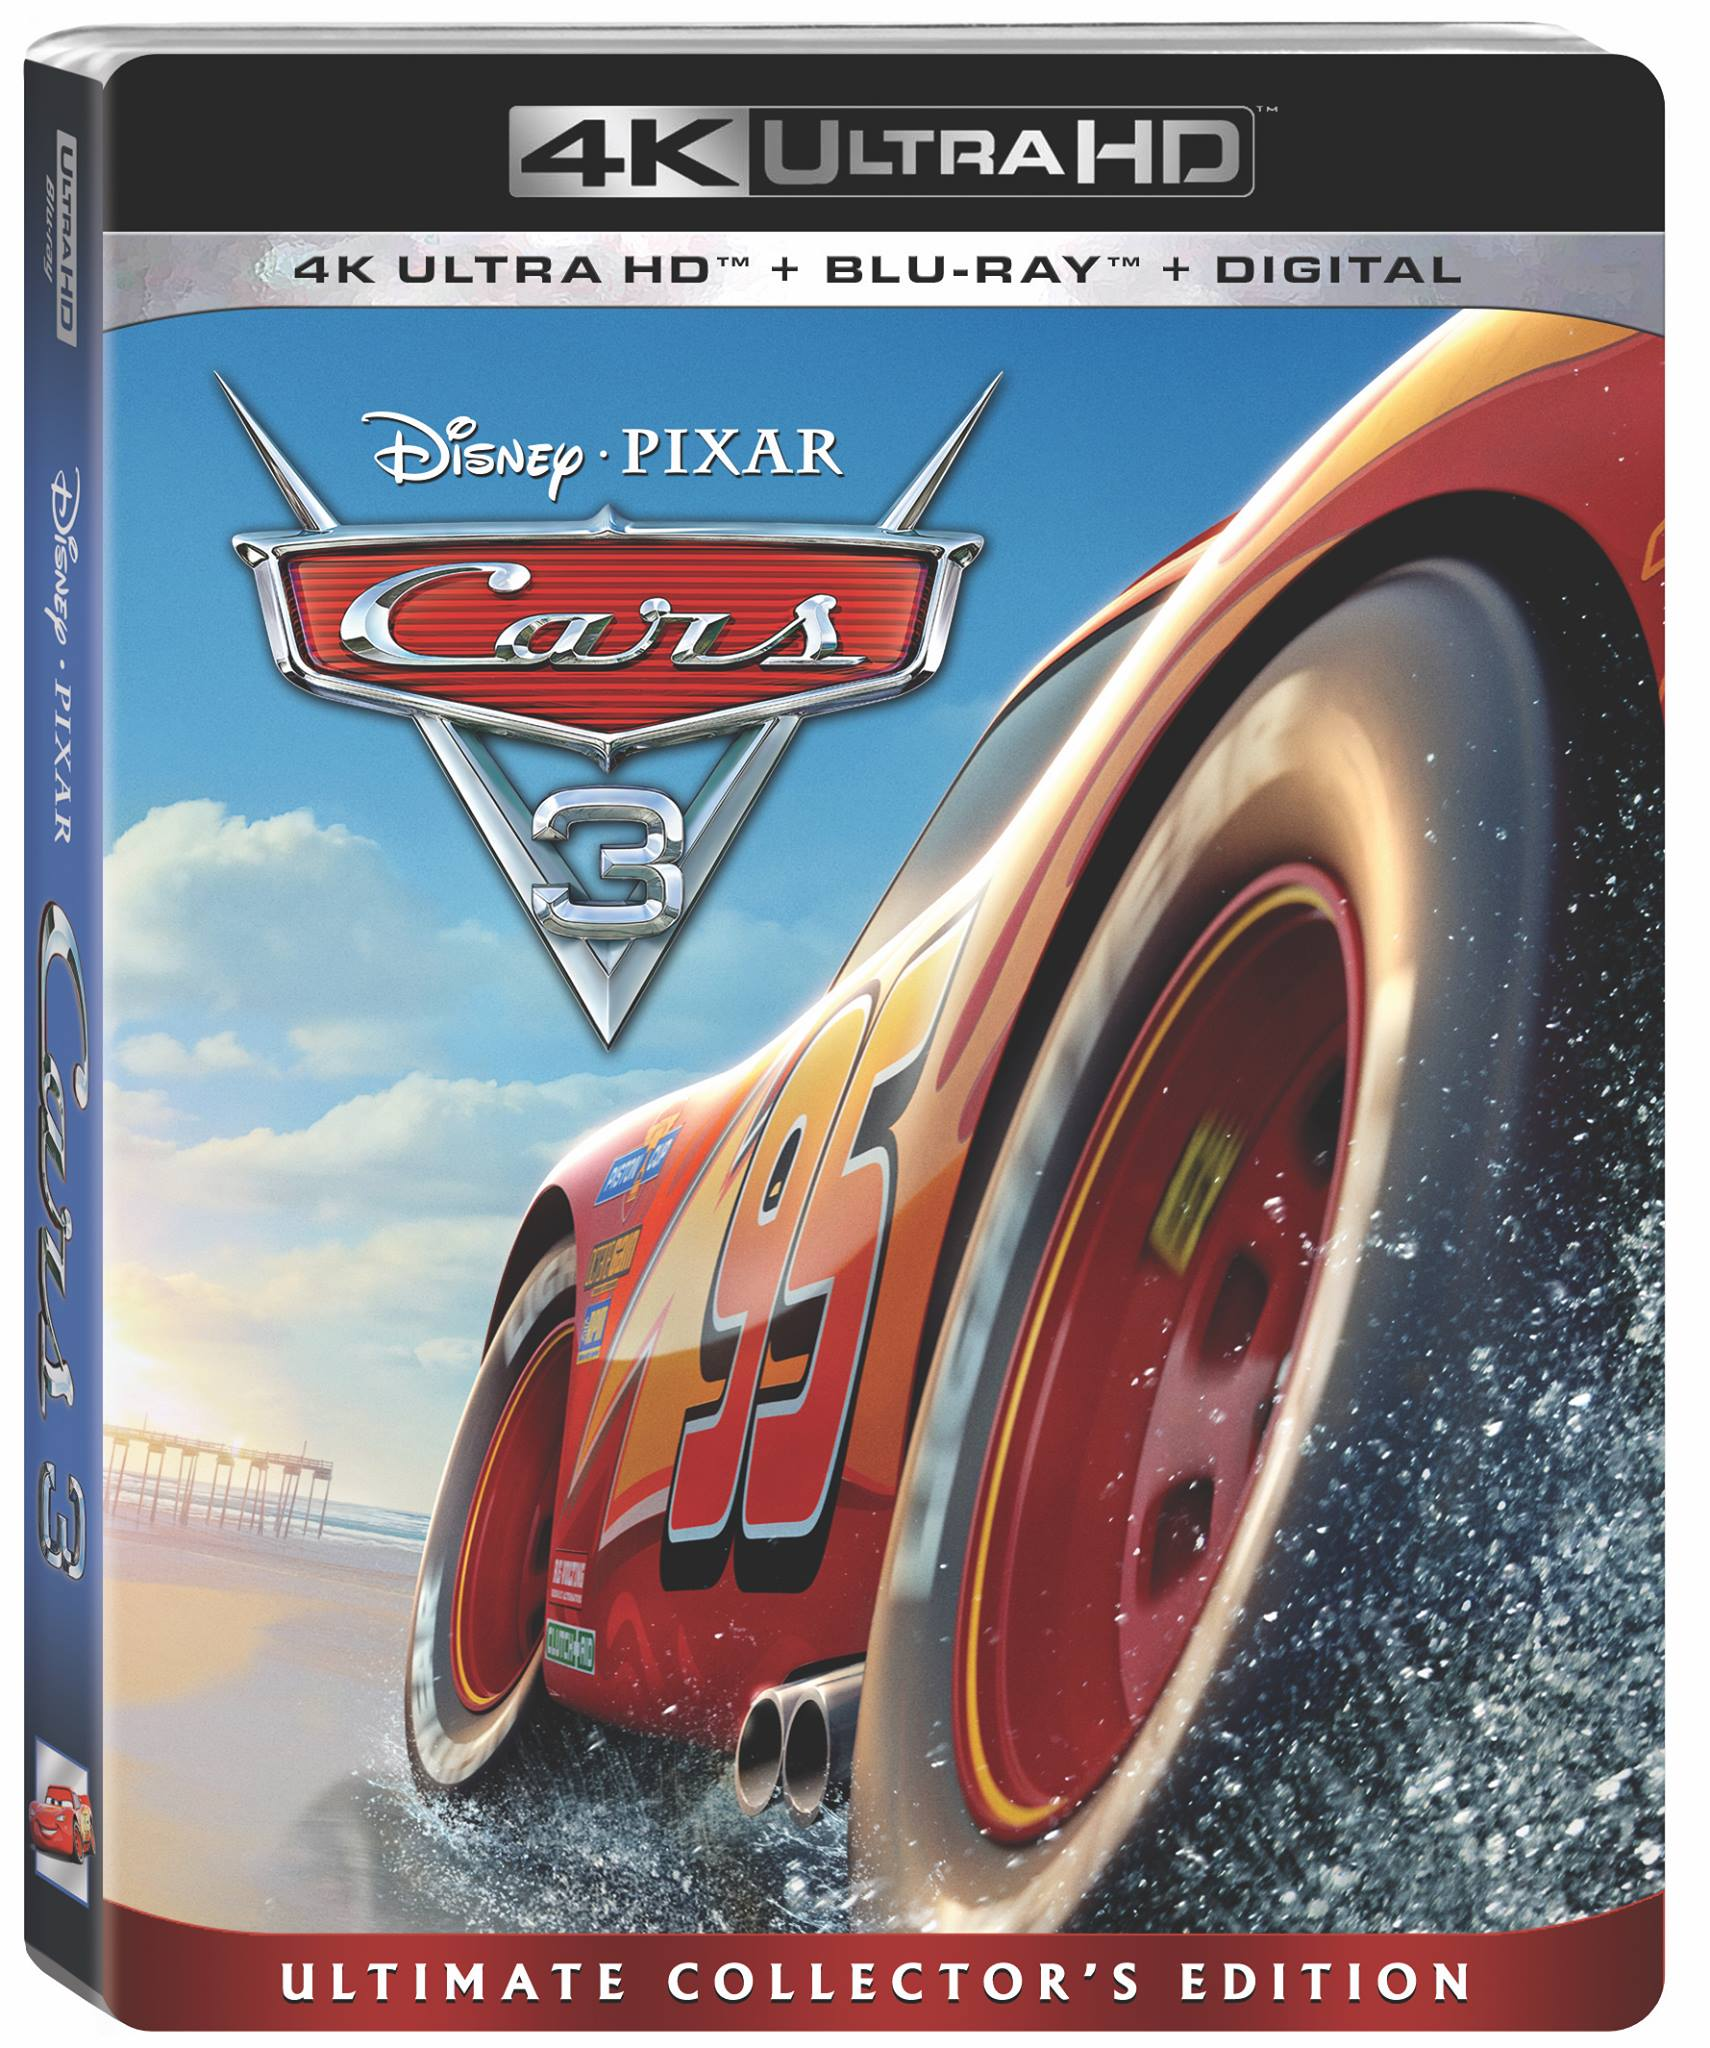 Disney Pixar Cars 3 Blurry